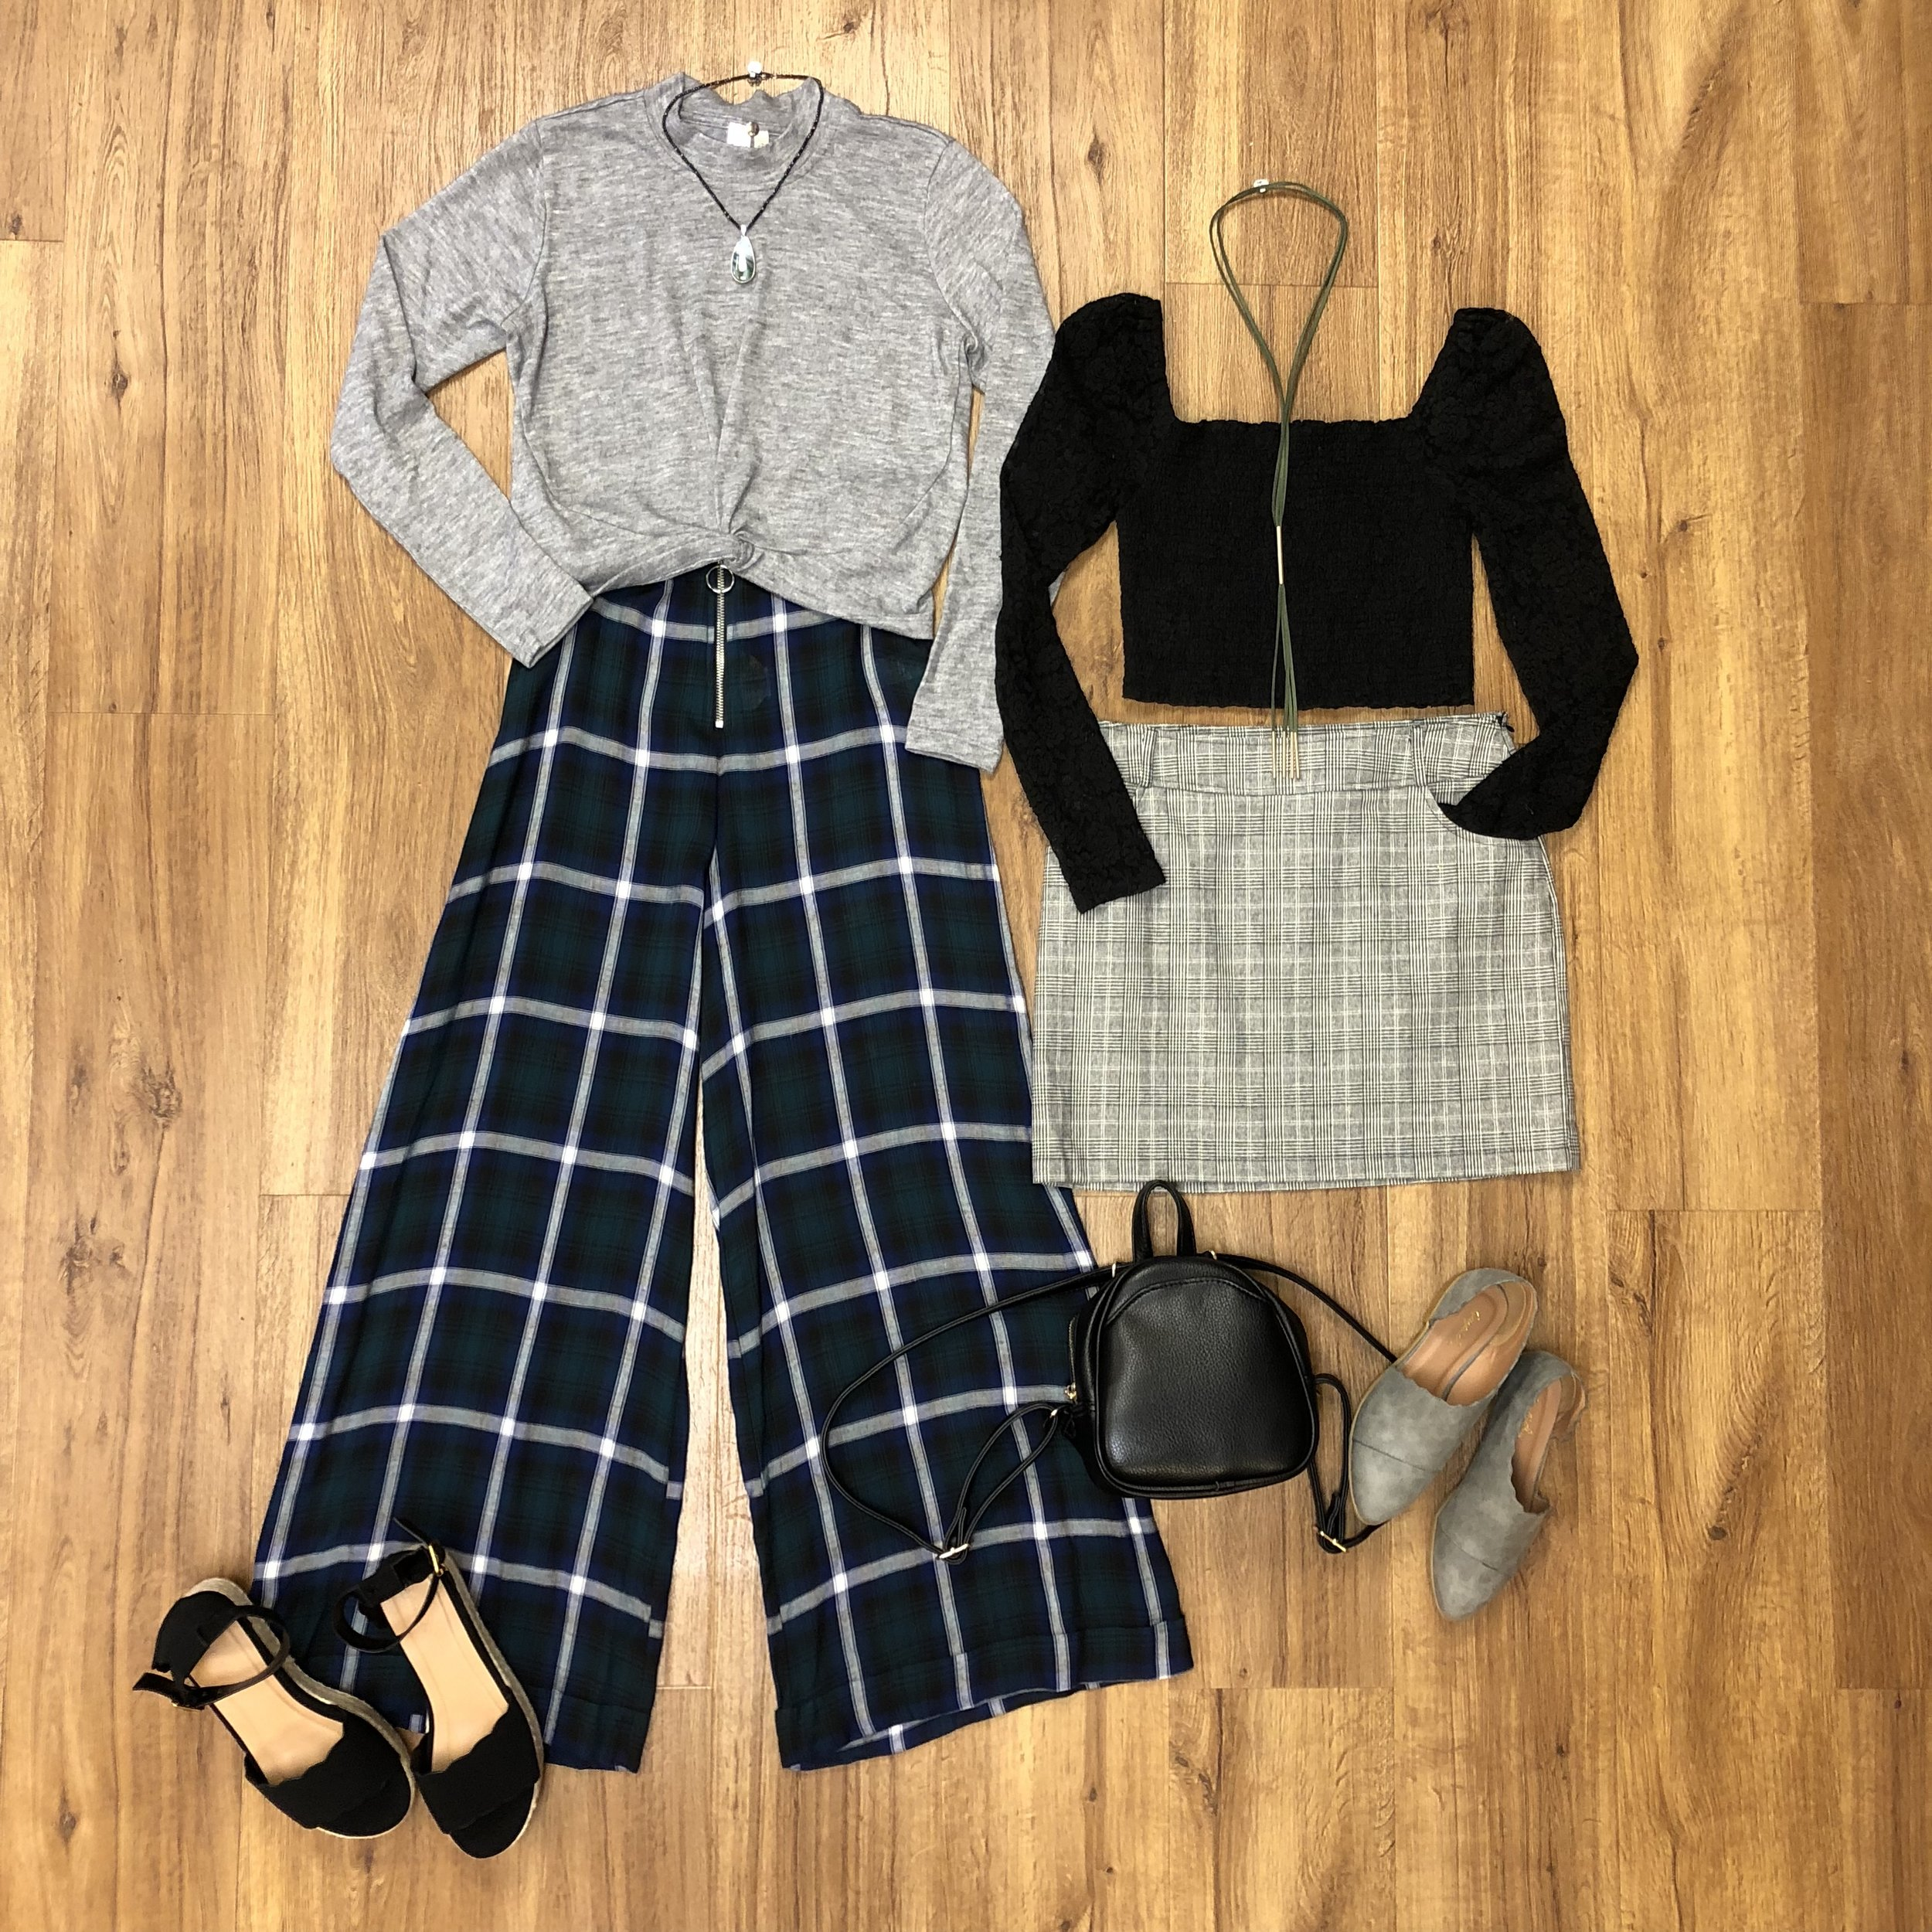 bella-mia-fall-plaid-pants-and-skirts.jpg